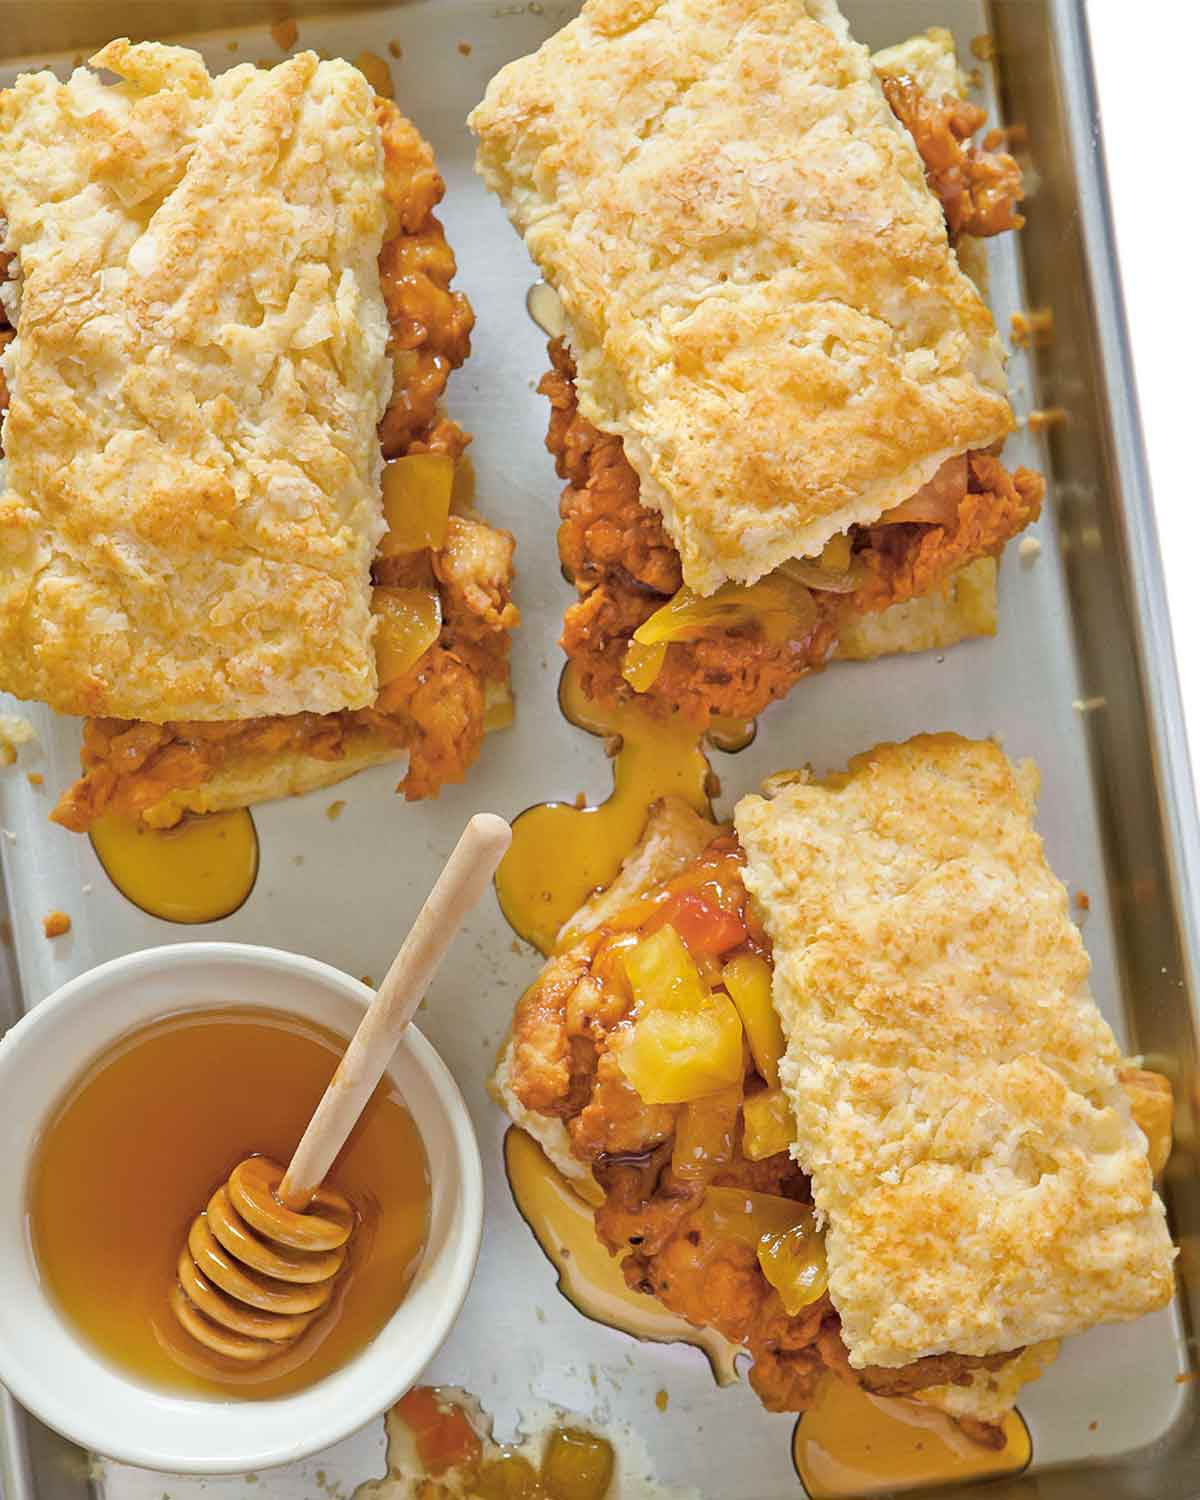 Three fried chicken and biscuits sandwiches on a baking sheet with a bowl of honey beside and drizzled around the sandwiches.